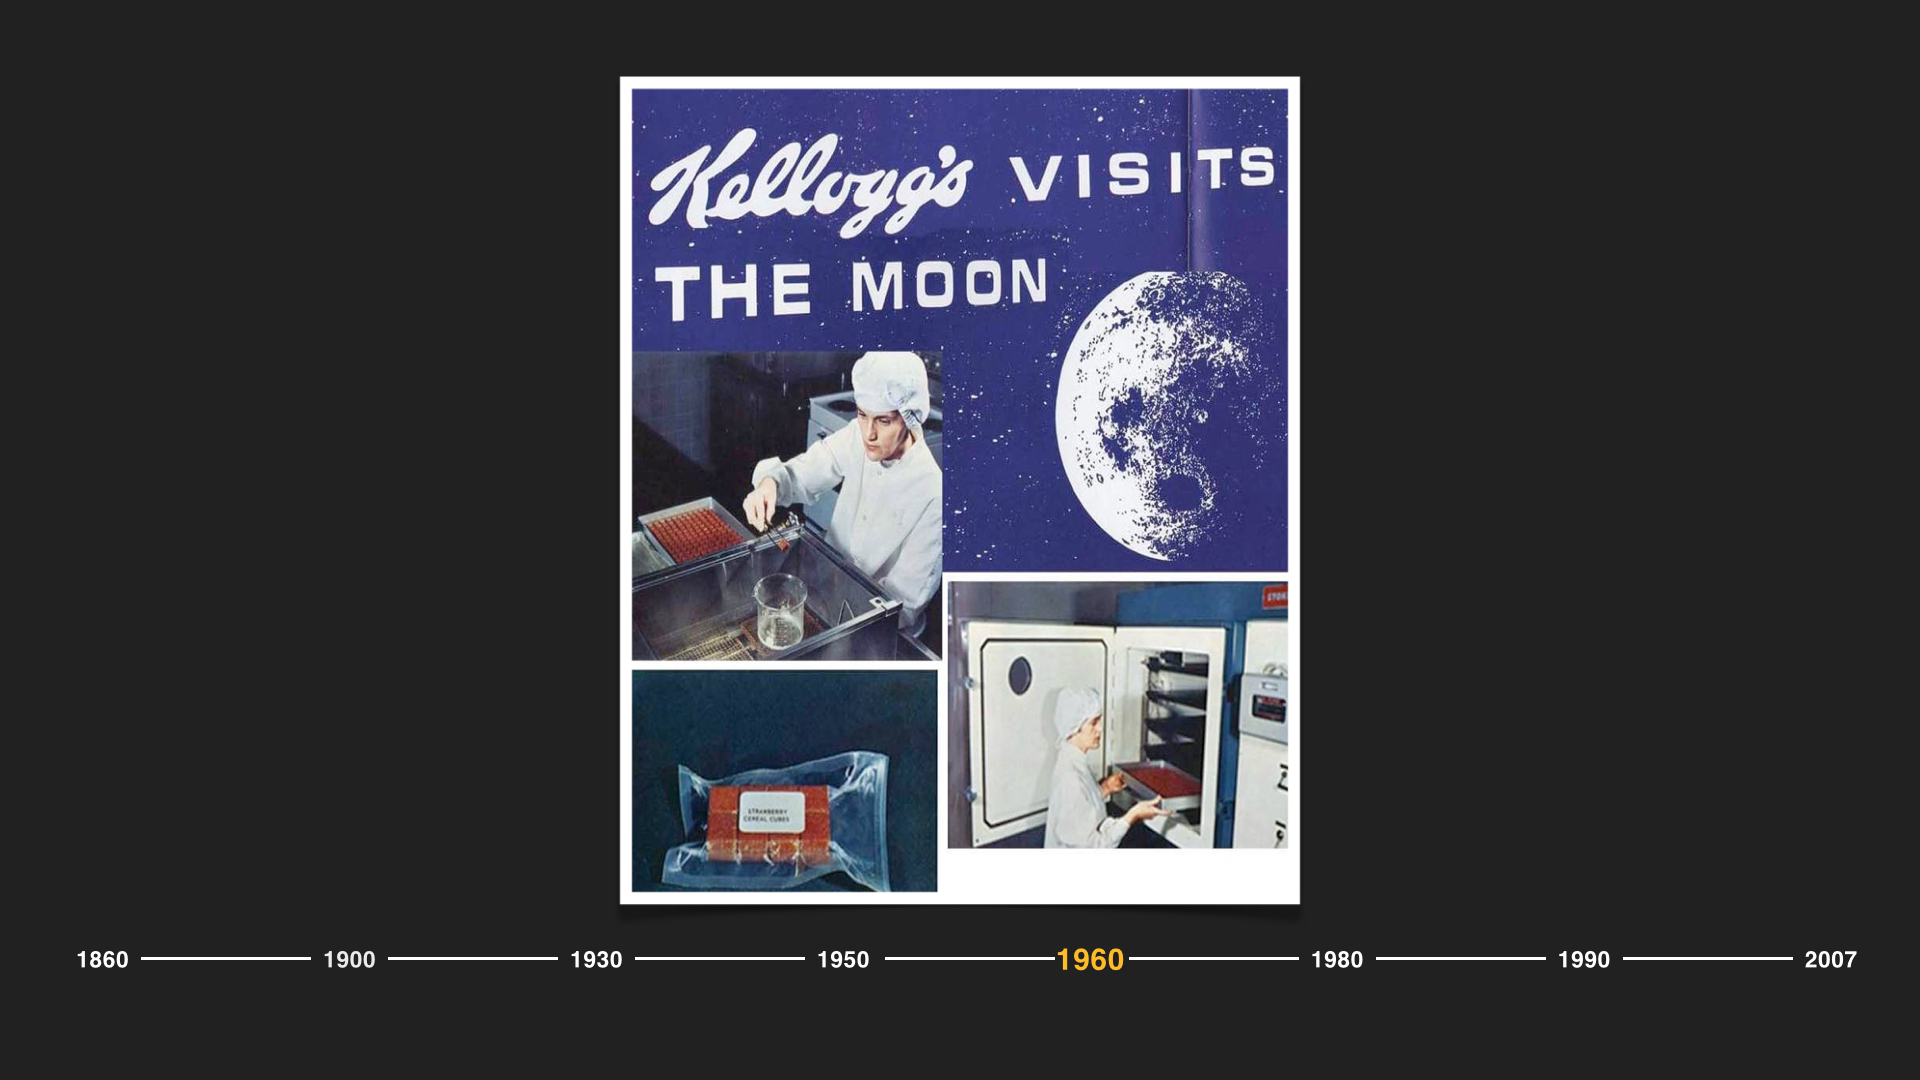 And as trust and pride in Big Food prevailed, our brands even landed on the moon.  In 1969, when Apollo 11 blasted off, to help ensure the astronauts had a delicious breakfast in space, Kellogg's was there as the breakfast of choice.